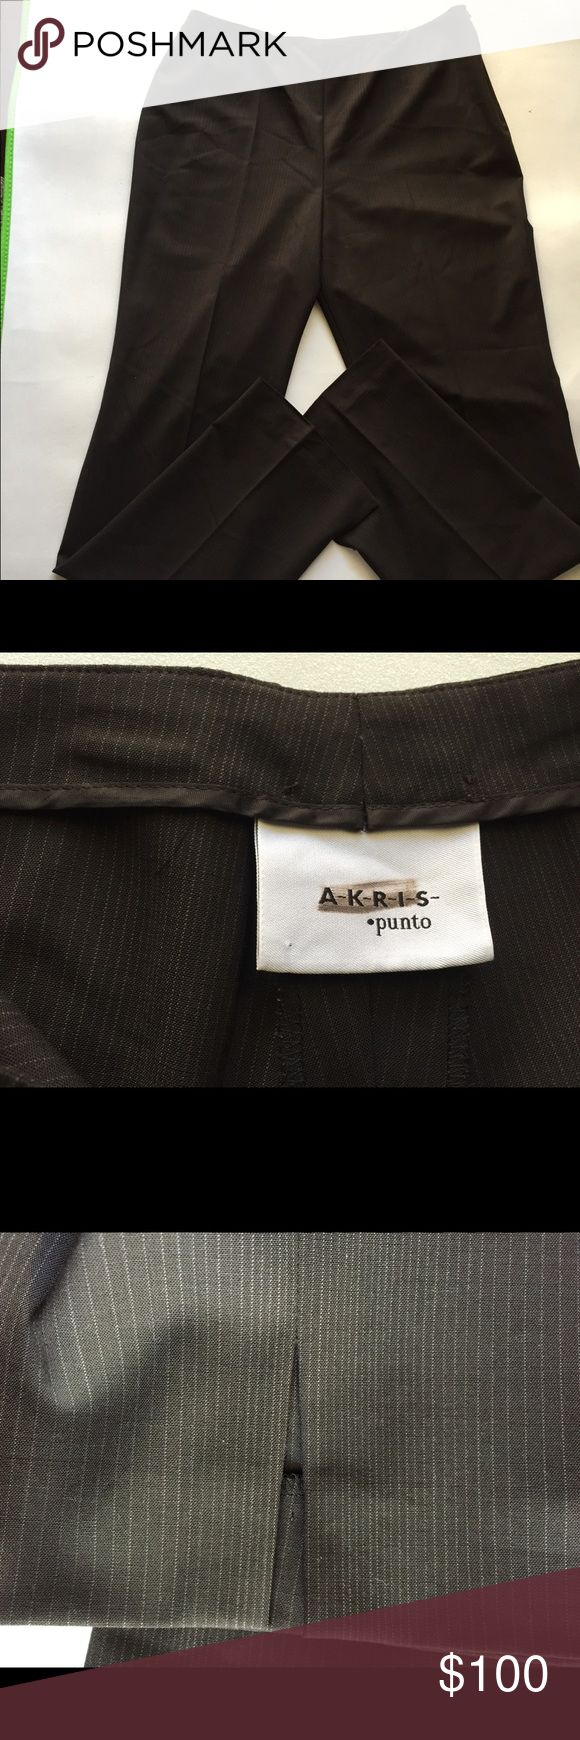 HIGH END AKRIS PINTO BROWN SLACKS WOMEN SZ 12 •EXCELLENT CONDITION • •note     ONE HEM STITCHING CAME LOOSE OTHERWISE NO ISSUES • •AKRIS PUNTO • •SIZE 12 • •BROWN WITH WHITE STRIPES • •SLACKS • •SIDE HIDDEN ZIPPER • •HEMS HAS SLITS FOR A BETTER FIT FOR ANY TYPE OF SHOES Pants Trousers